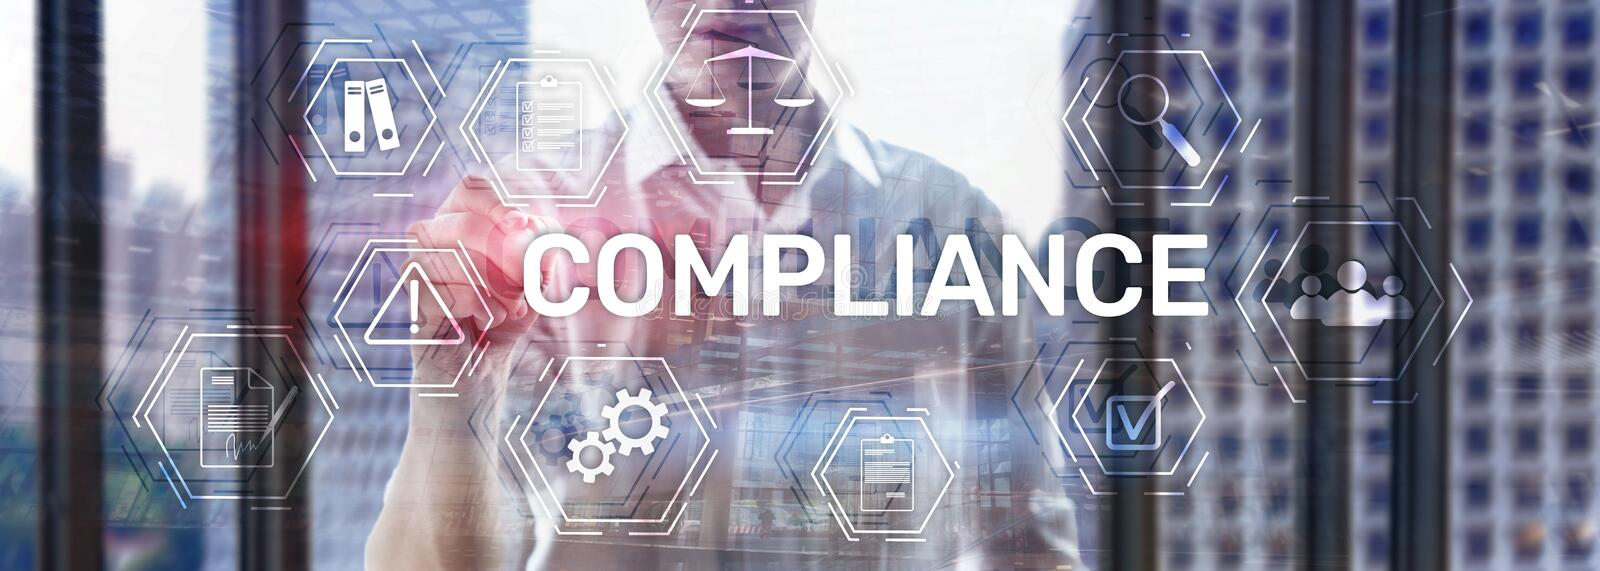 Compliance diagram with icons. Business concept on abstract background. Policy regulation governance law regulatory legal quality regulations policies royalty free stock images